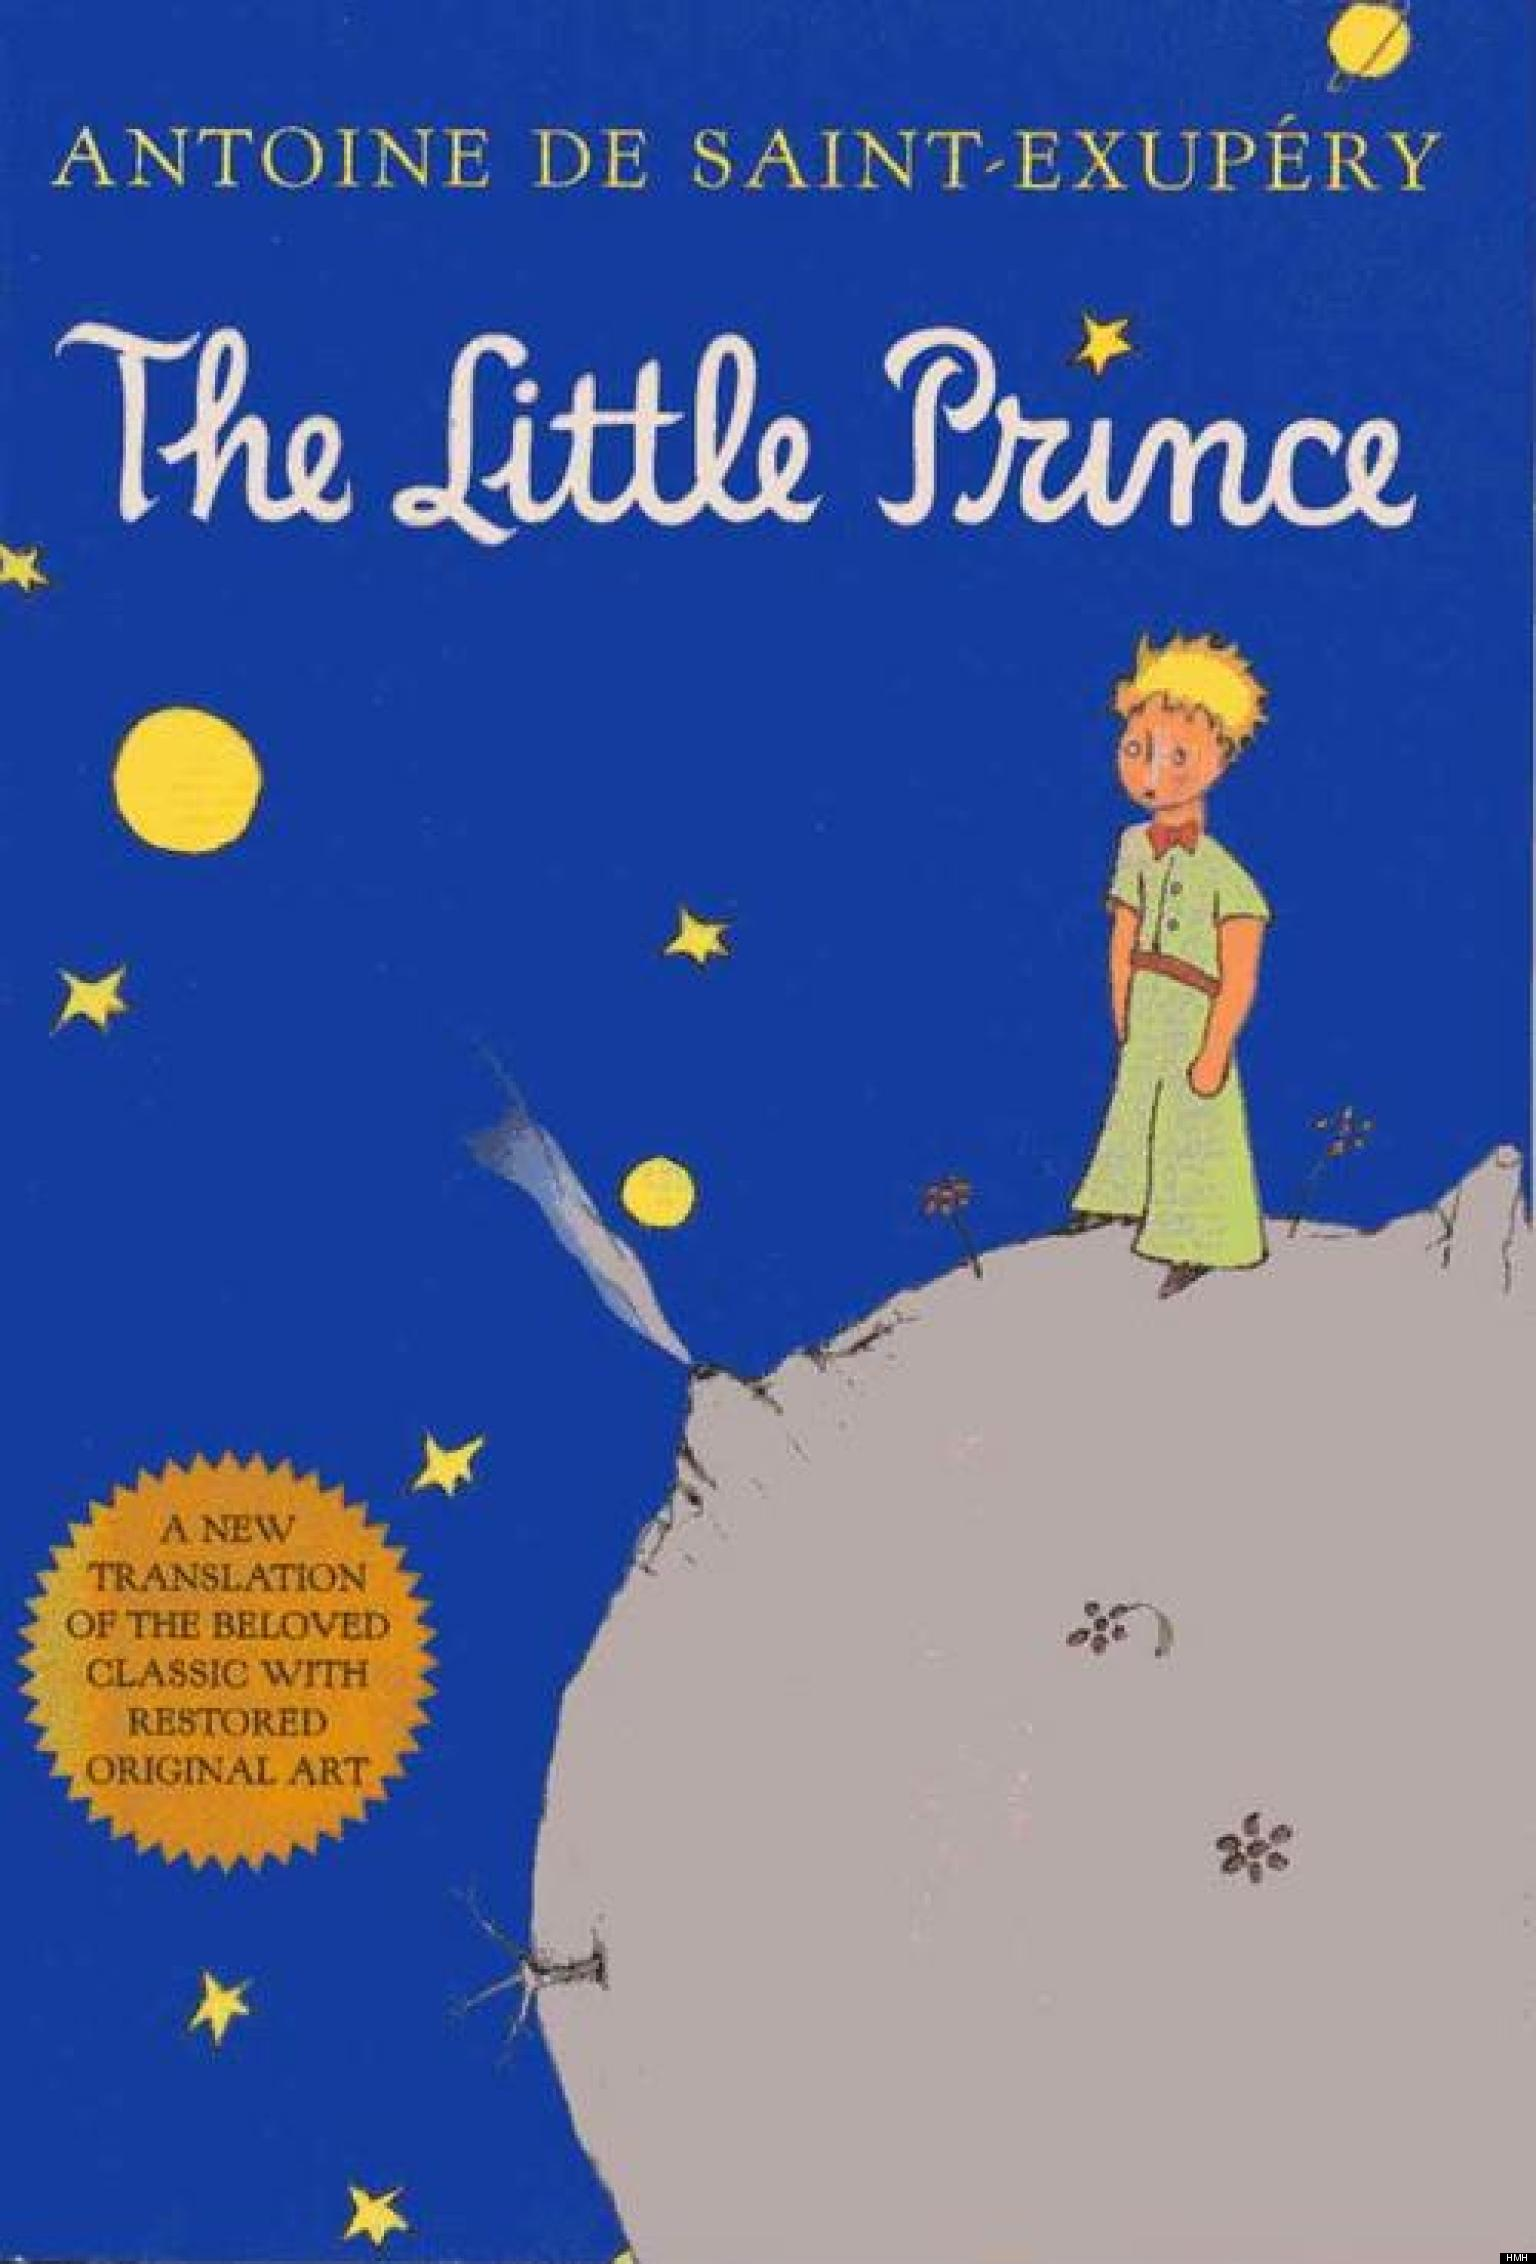 http://i.huffpost.com/gen/1095714/images/o-LITTLE-PRINCE-ANNIVERSARY-EDITION-facebook.jpg